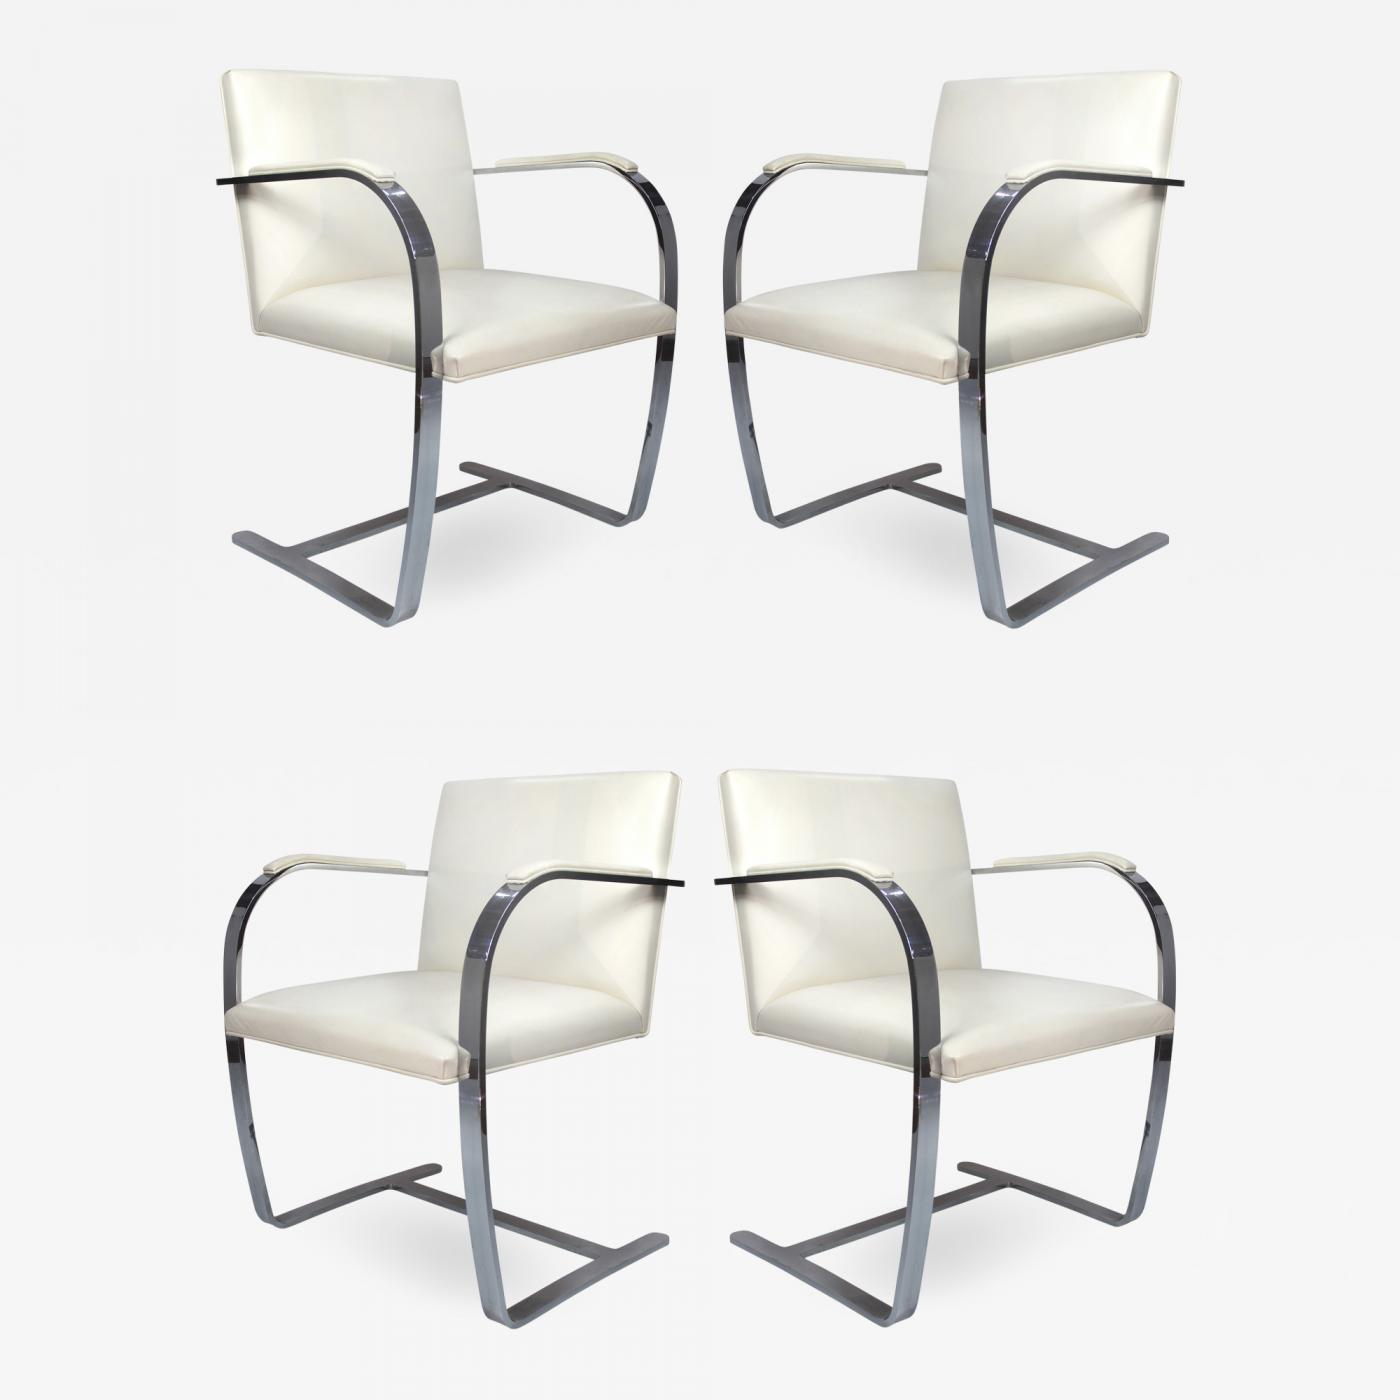 Awe Inspiring Ludwig Mies Van Der Rohe Mies Van Der Rohe Knoll Flat Bar Brno Chairs Eggshell White Leather Set Of 4 Ibusinesslaw Wood Chair Design Ideas Ibusinesslaworg